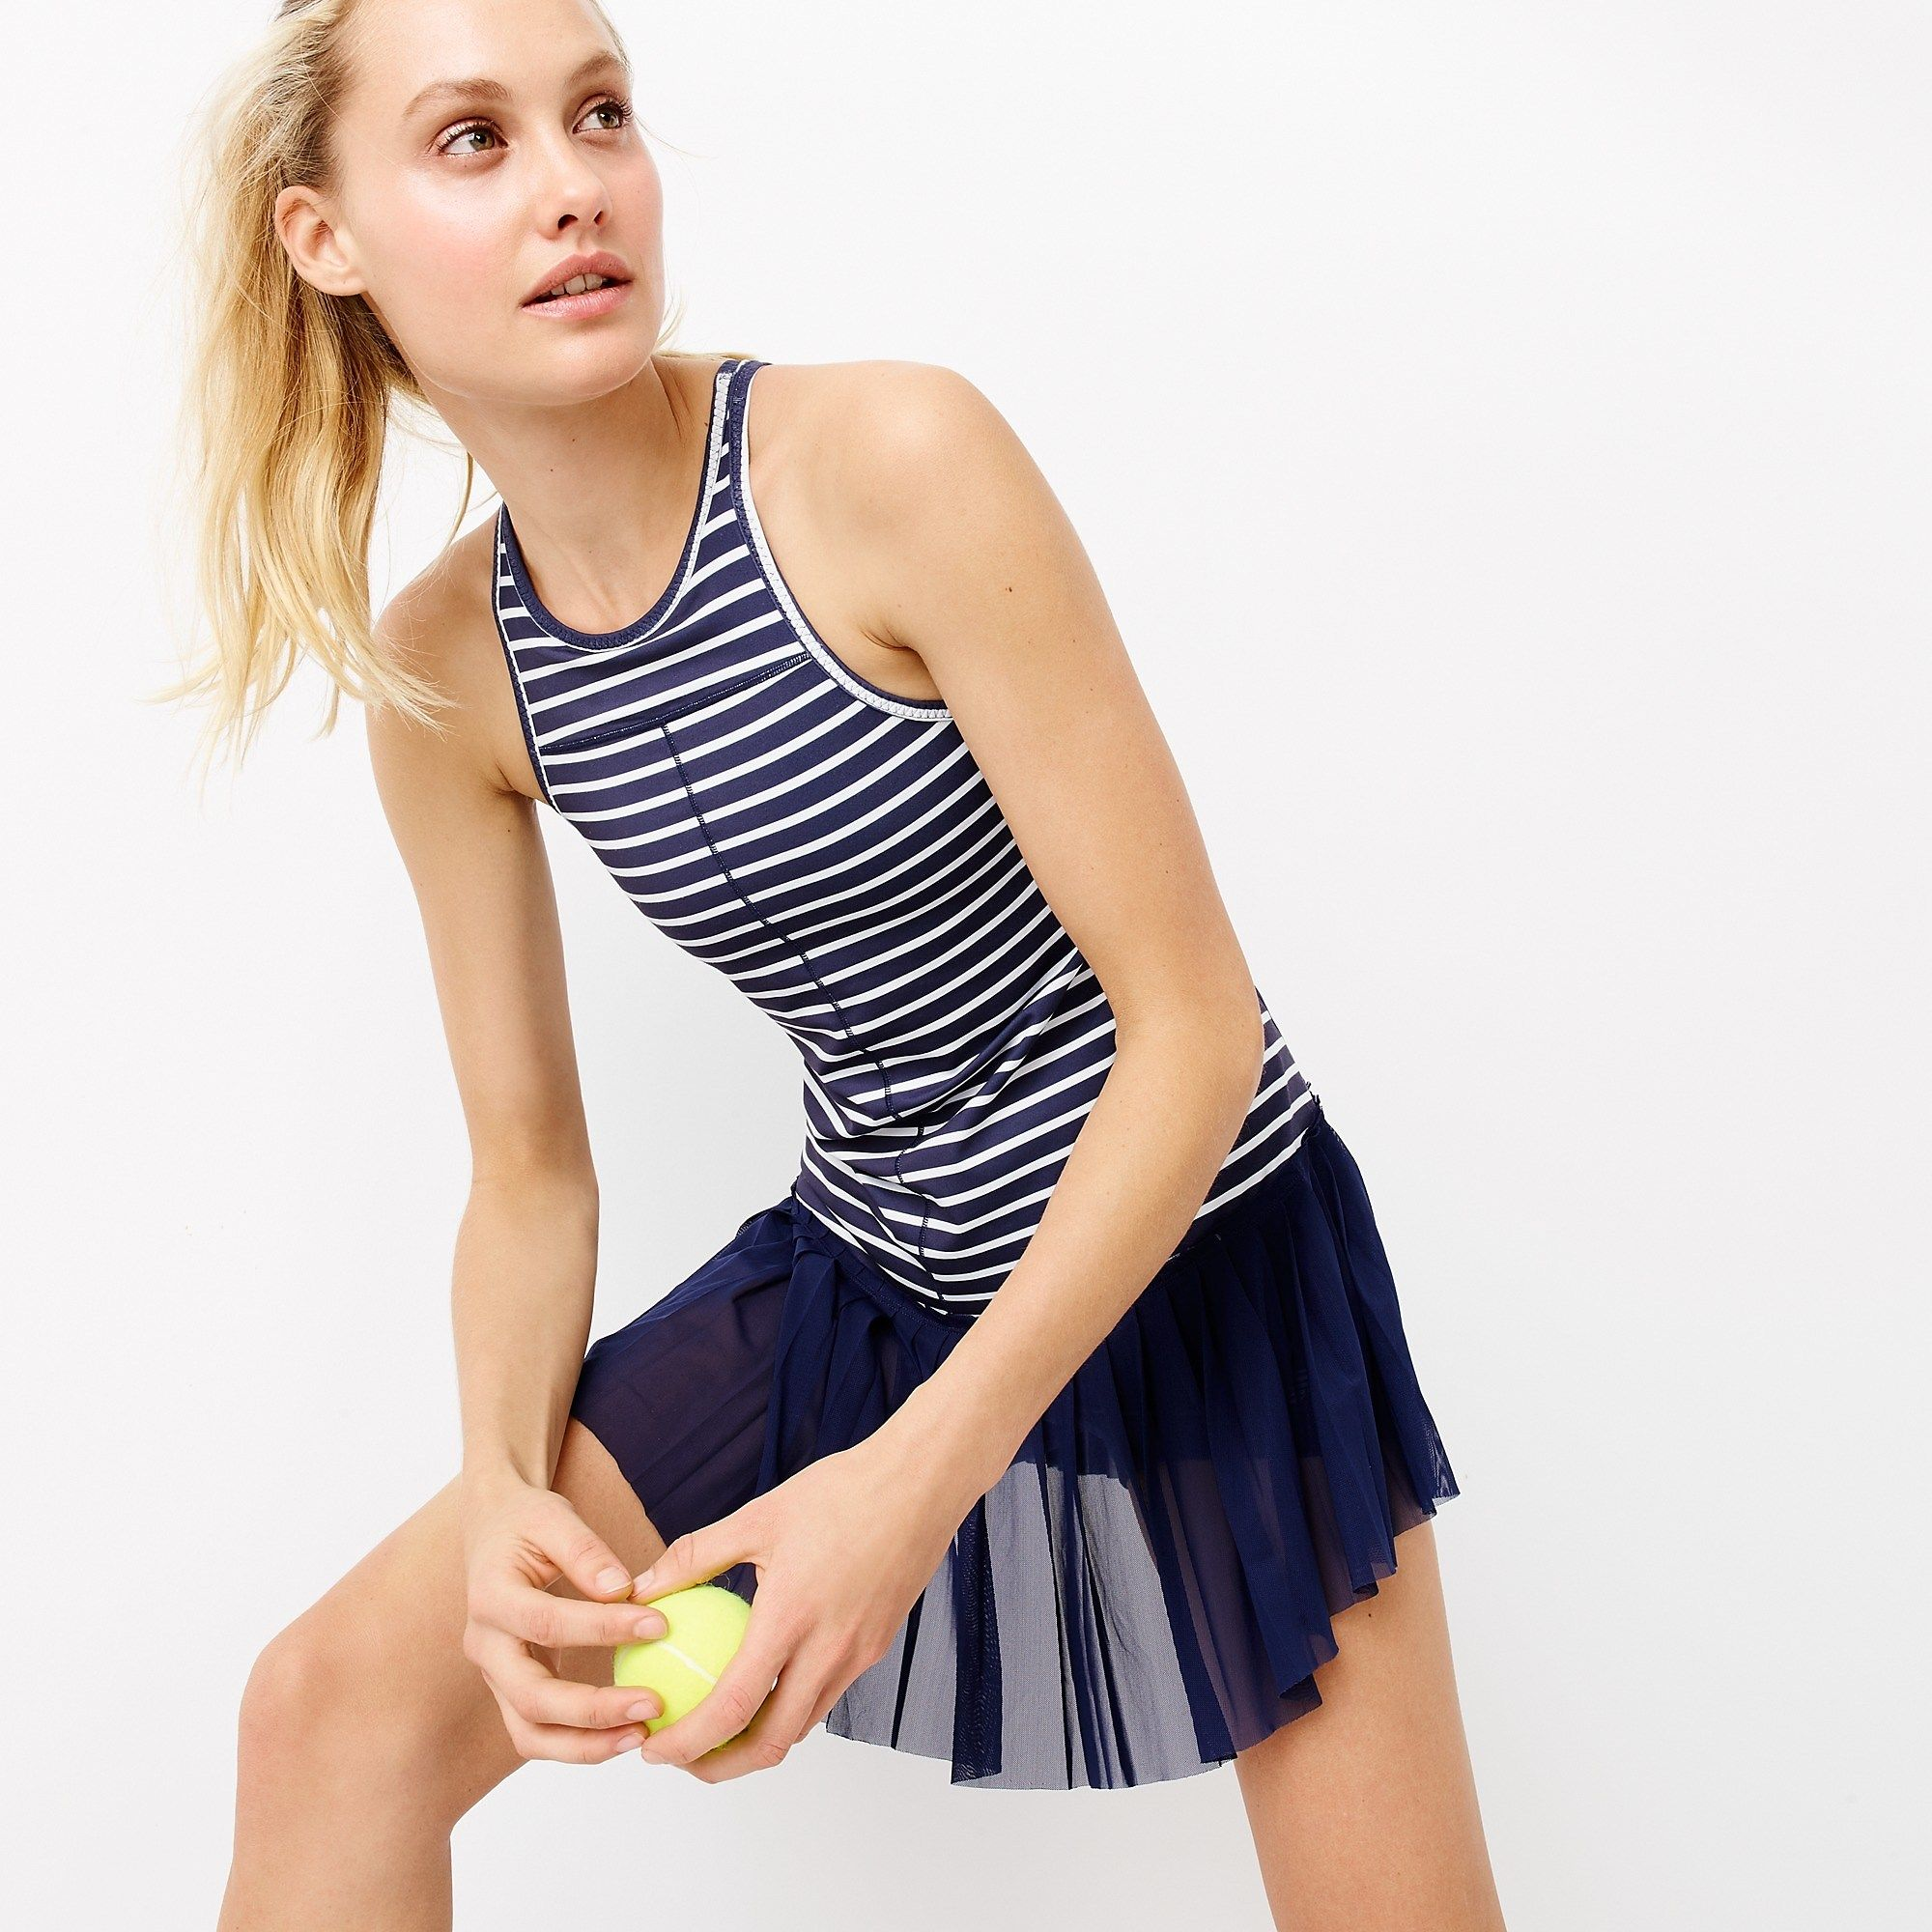 New Balance For J Crew Tennis Dress In Stripe Tennis Dress Tennis Clothes Girls Tennis Dress